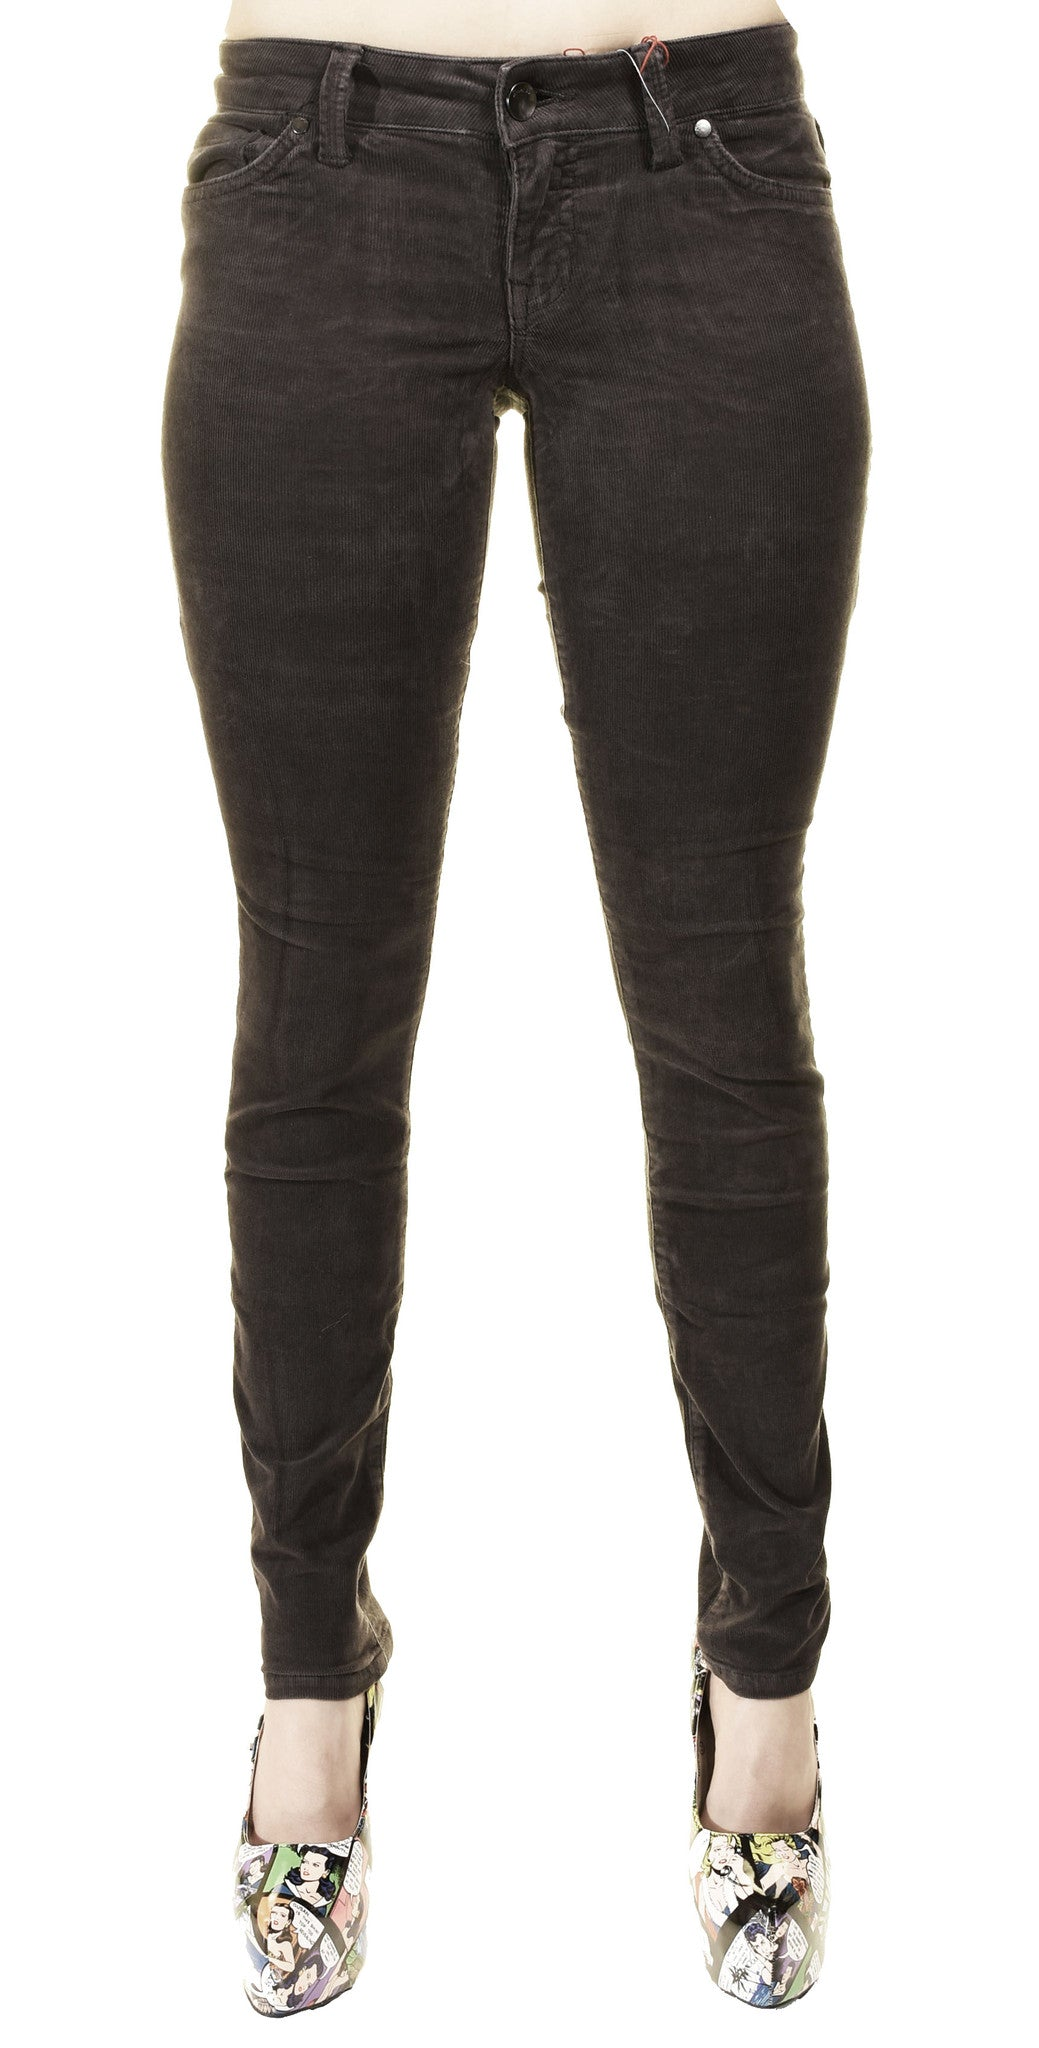 Level 99 Liza Skinny Corduroy Jeans (Taupe Gray)